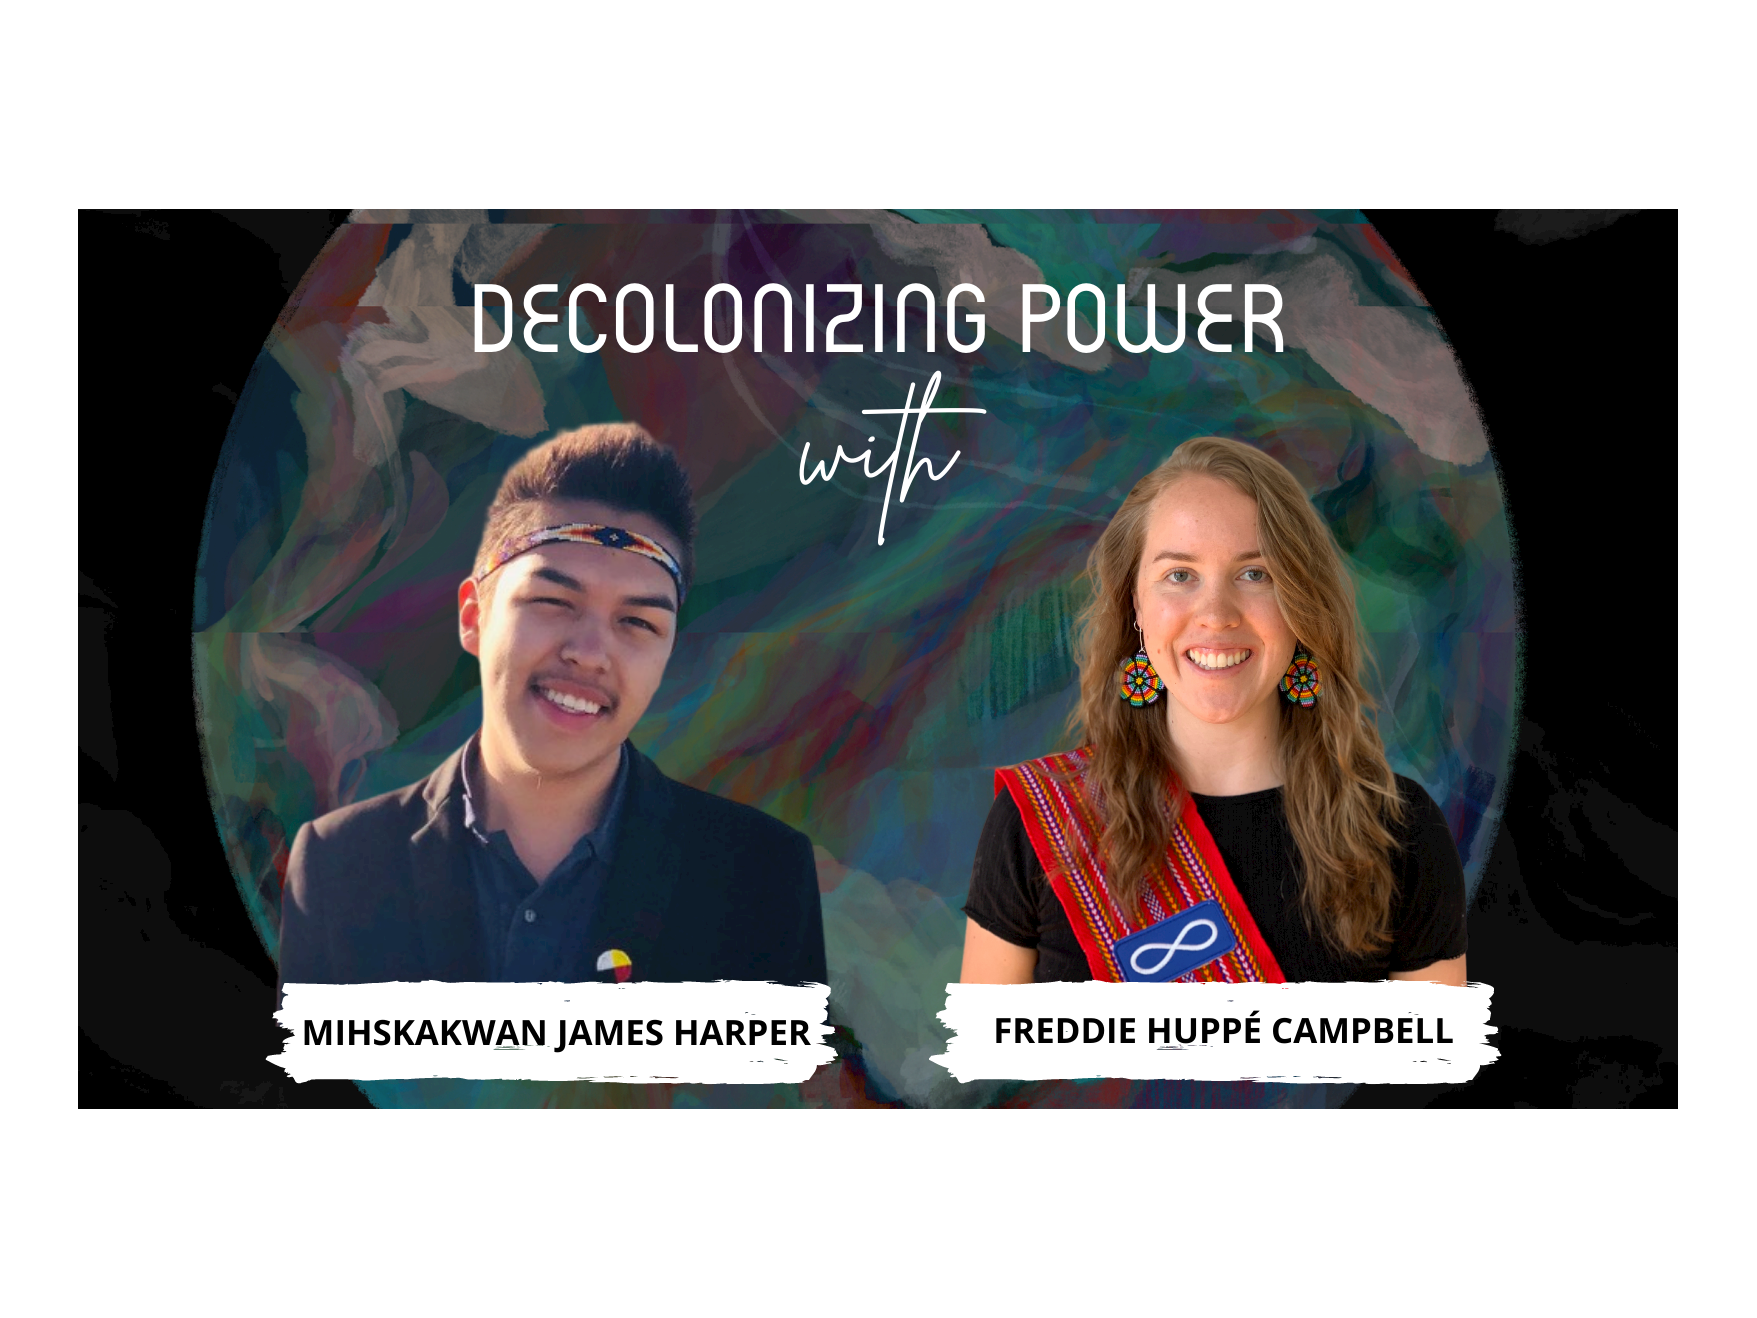 Decolonizing Power, ICE's new podcast series is HERE!